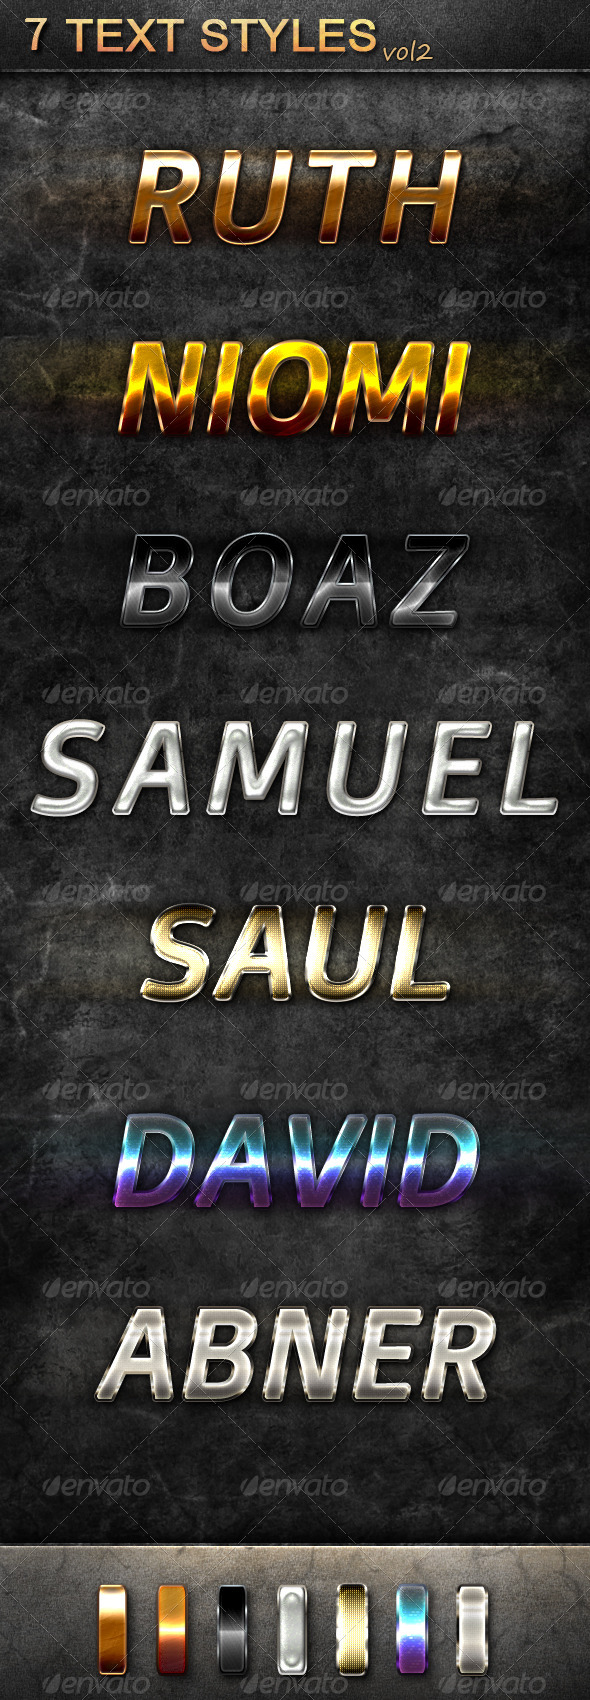 GraphicRiver 7 Text Styles Vol 2 5482649